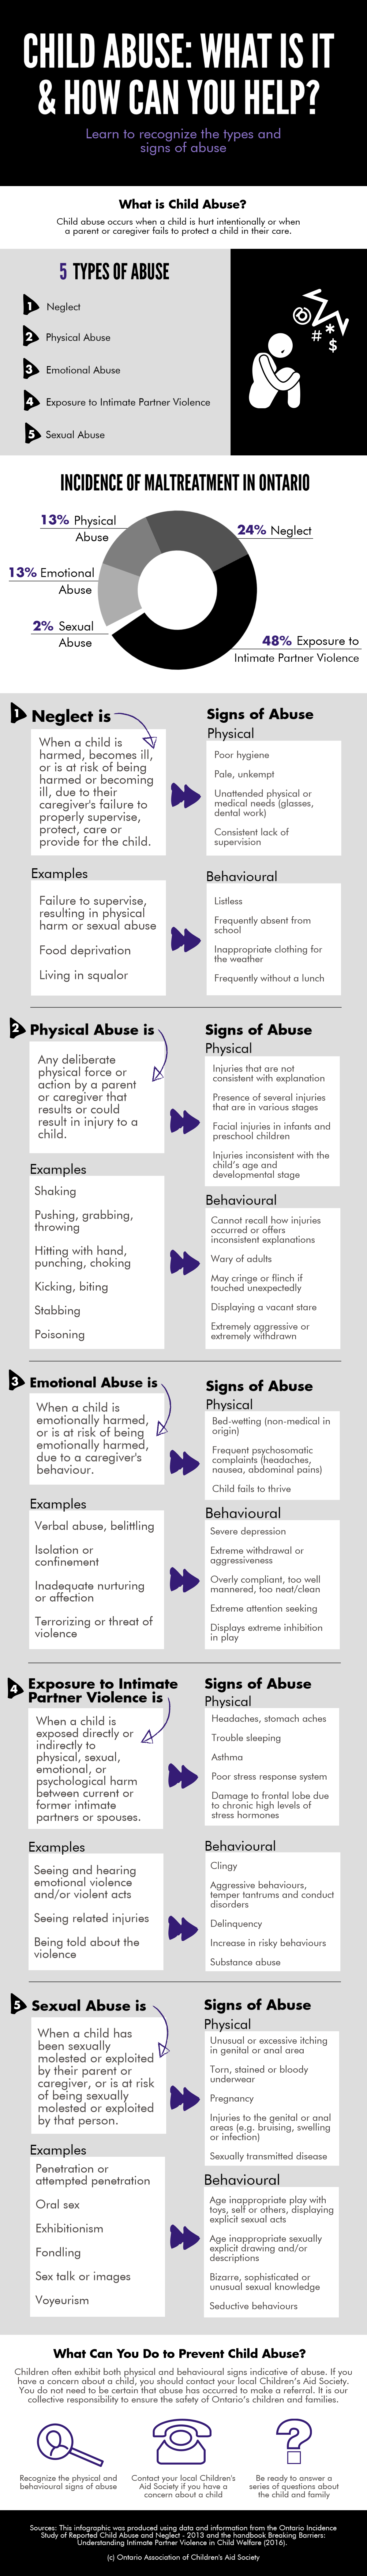 Child Abuse Information